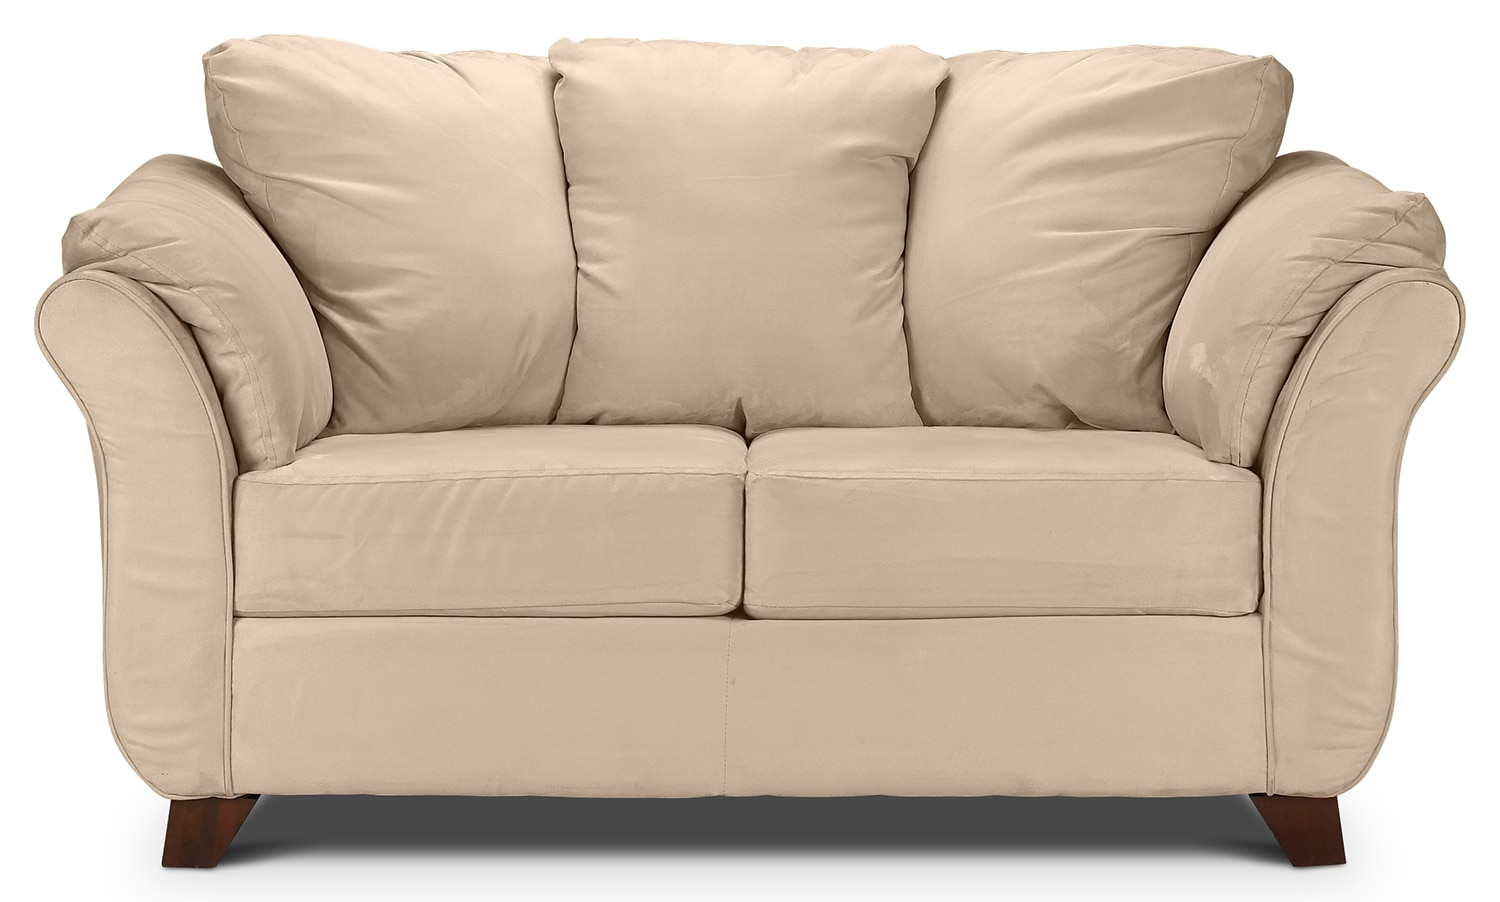 Living Room Furniture - Collier Loveseat - Beige